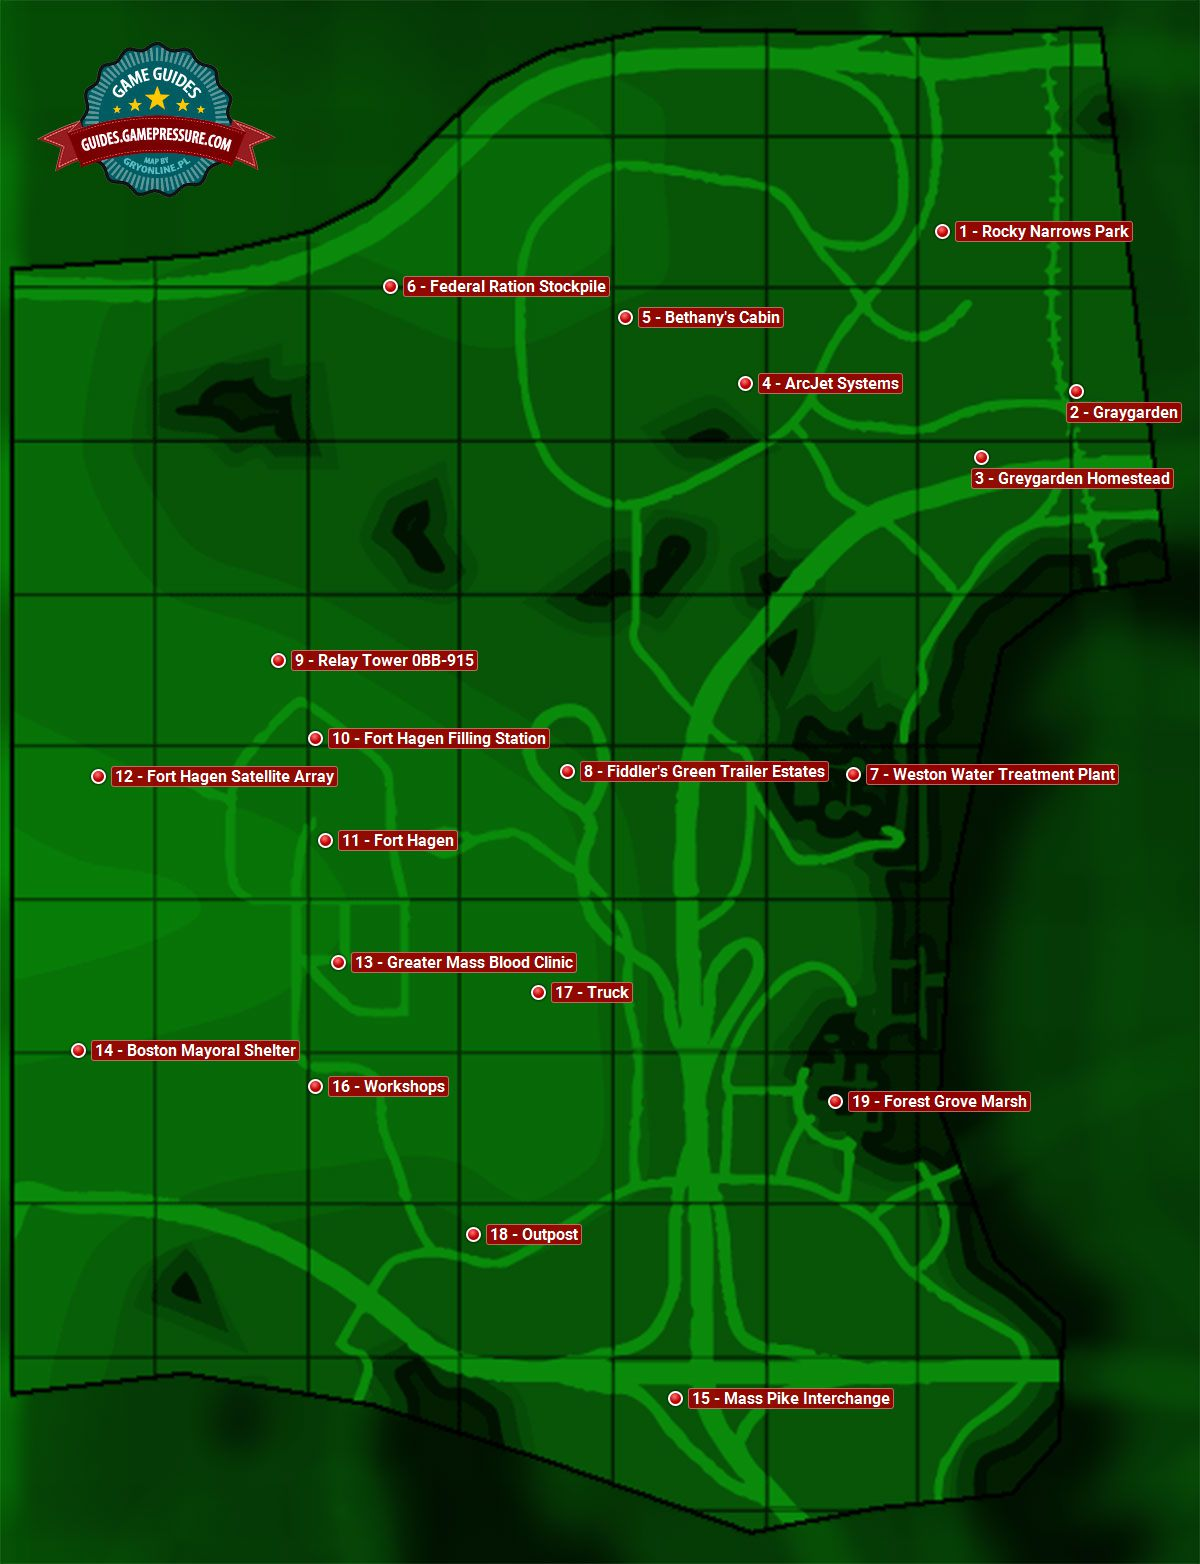 Fallout 4 Enemy Level Map : fallout, enemy, level, Hagen, Sector, Fallout, Guide, Walkthrough, Gamepressure.com